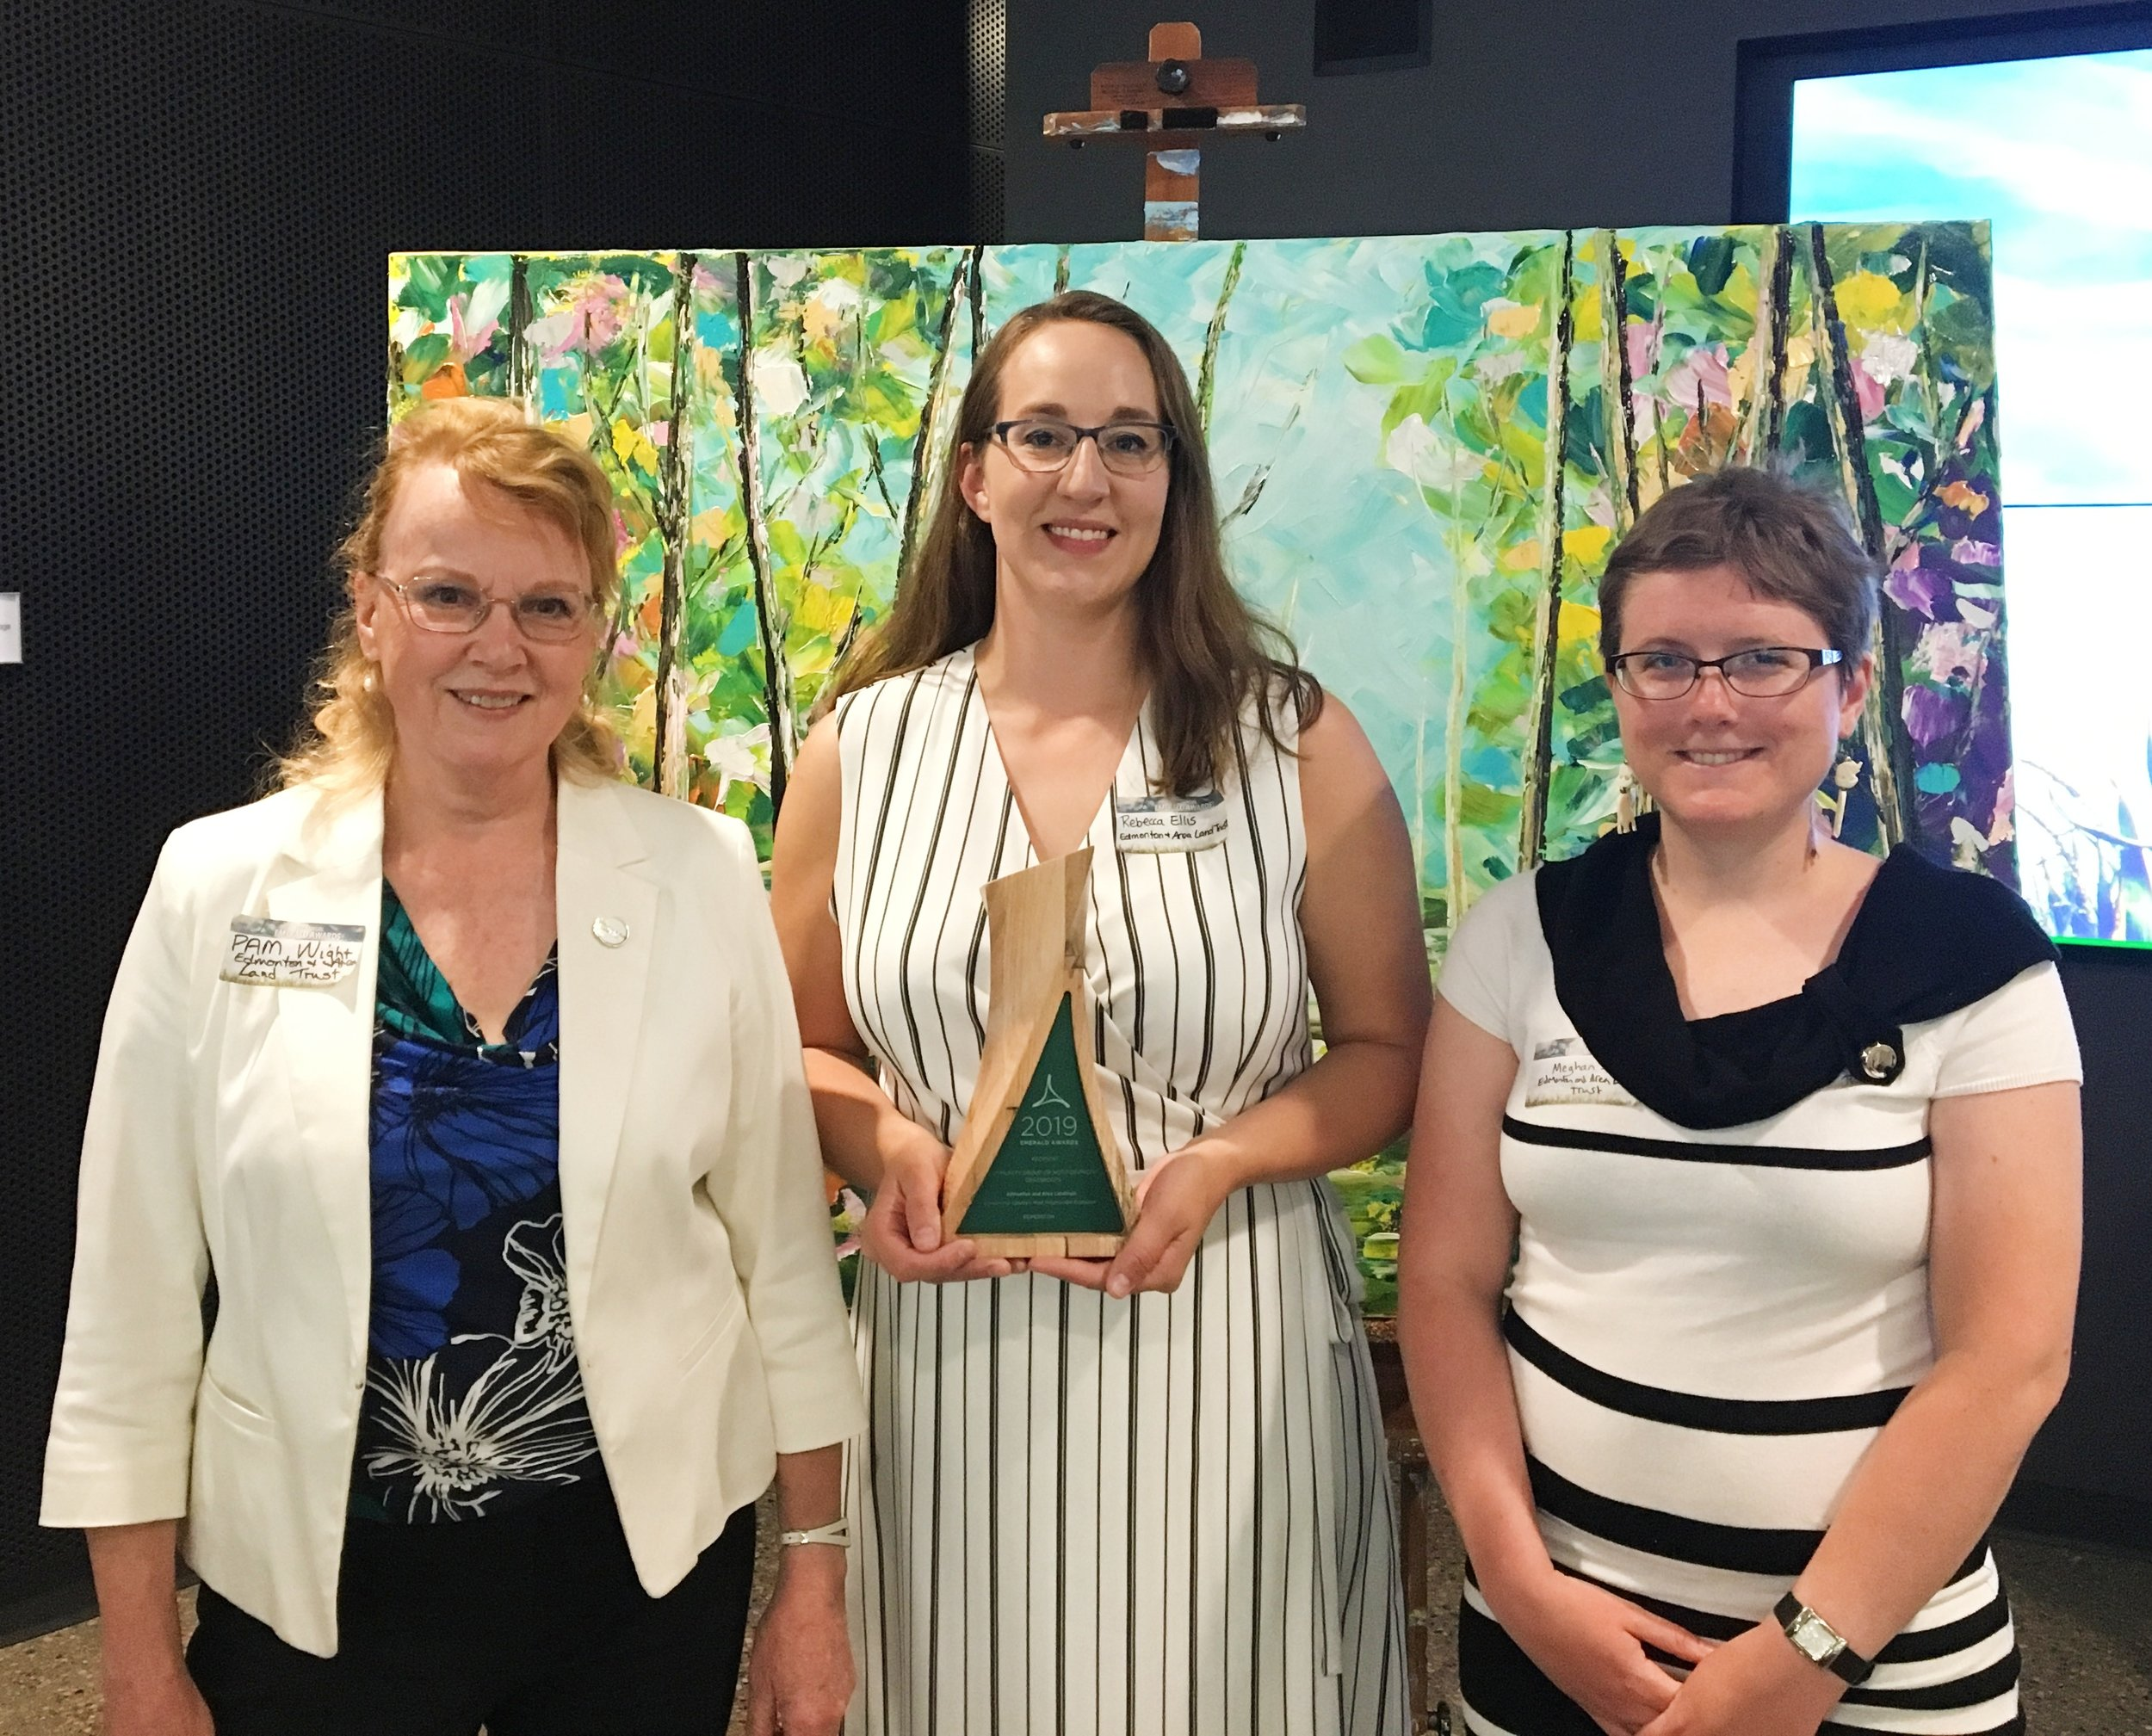 Pictured (Left to Right): Pam Wight, Executive Director; Rebecca Ellis, Conservation Manager; Meghan Jacklin, Conservation Coordinator